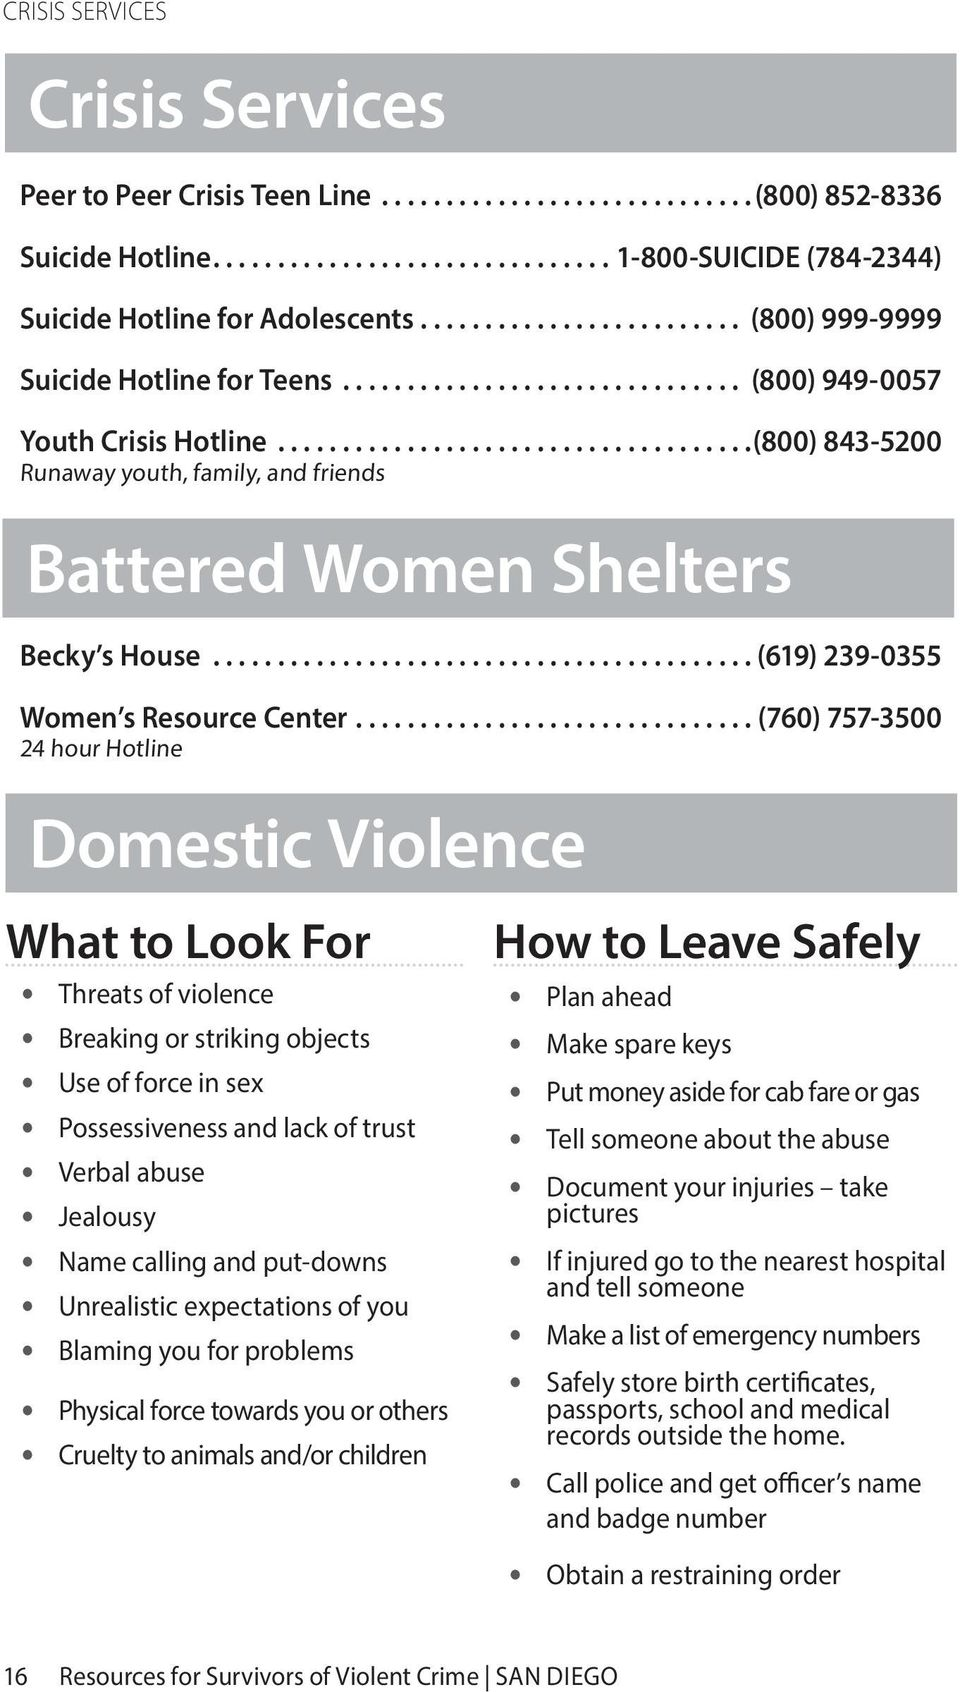 ...(760) 757-3500 24 hour Hotline Domestic Violence What to Look For Threats of violence Breaking or striking objects Use of force in sex Possessiveness and lack of trust Verbal abuse Jealousy Name